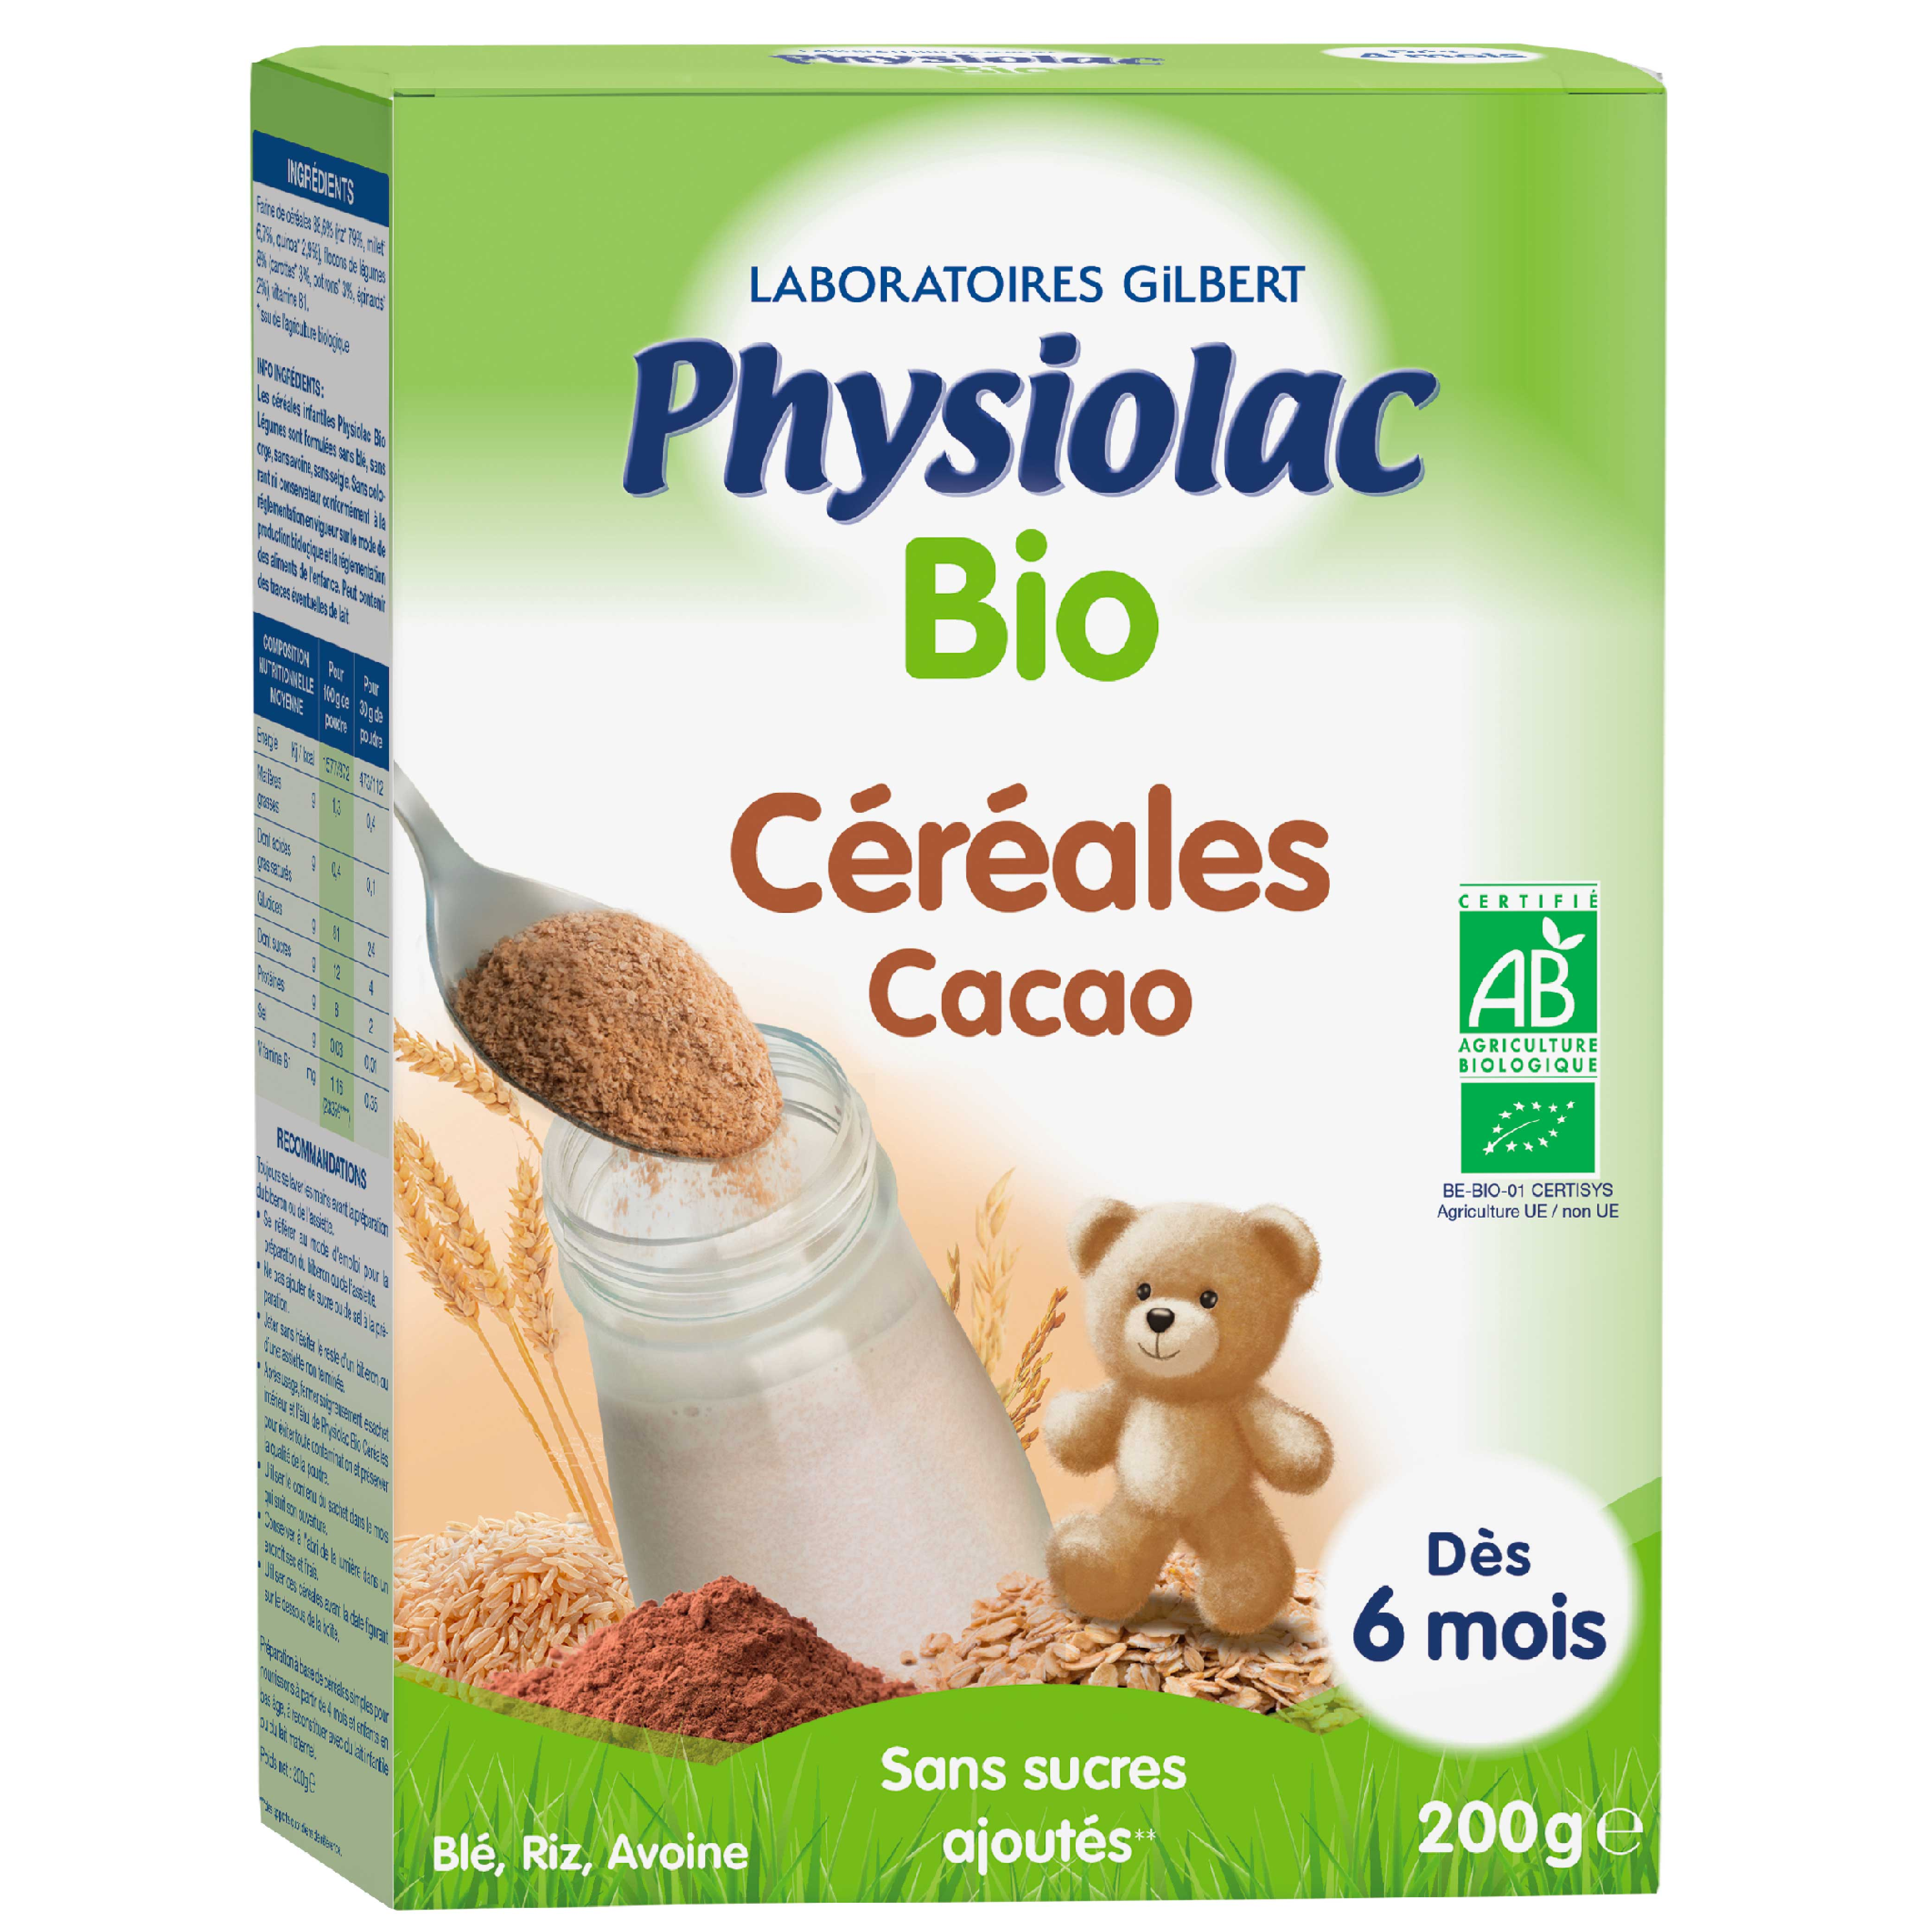 Organic Cacao Cereals For Baby Bottles: 6 Months